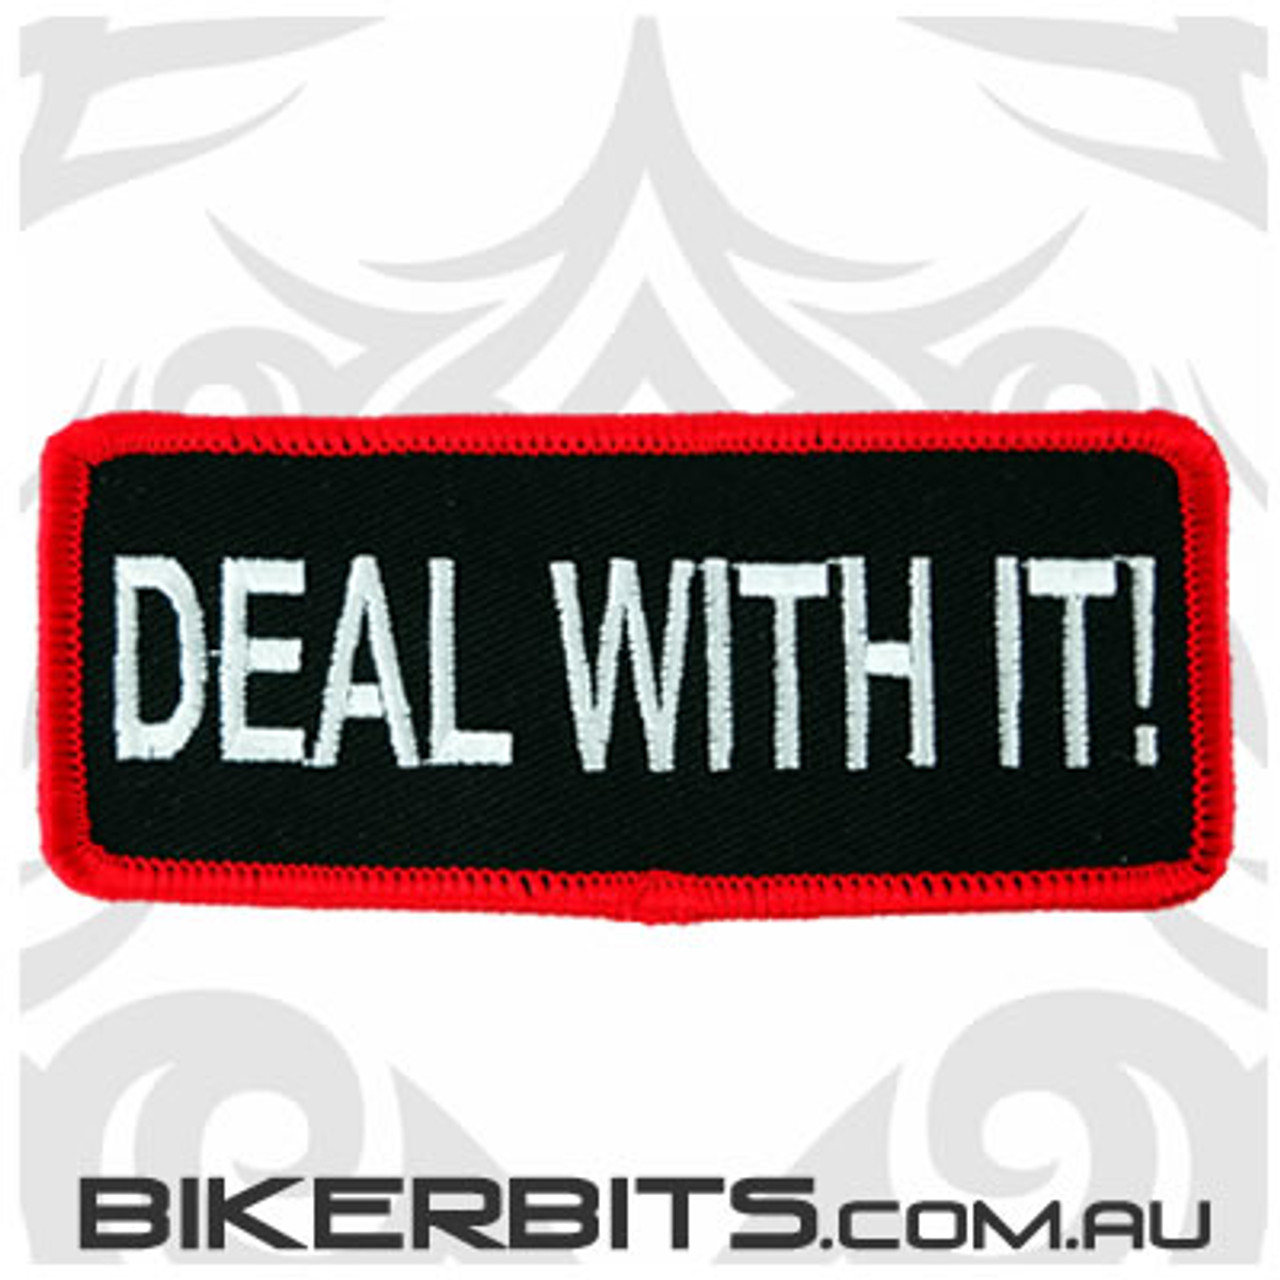 Patch - Deal With It!